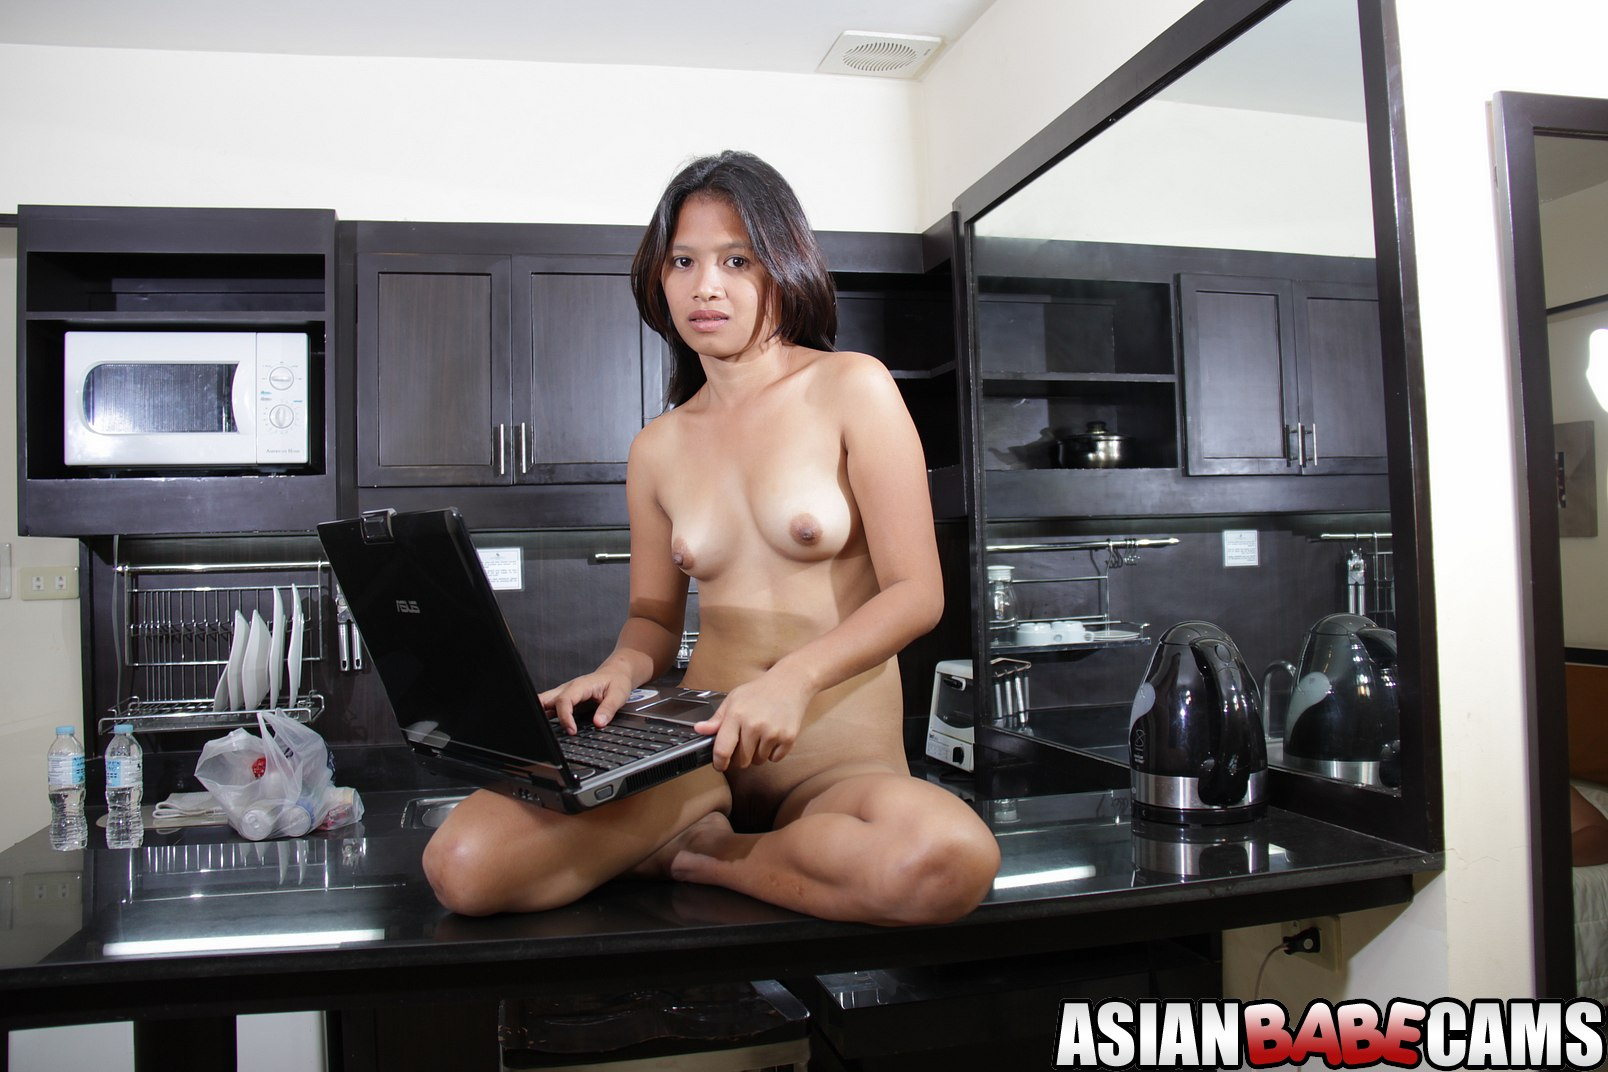 Cams from Asia